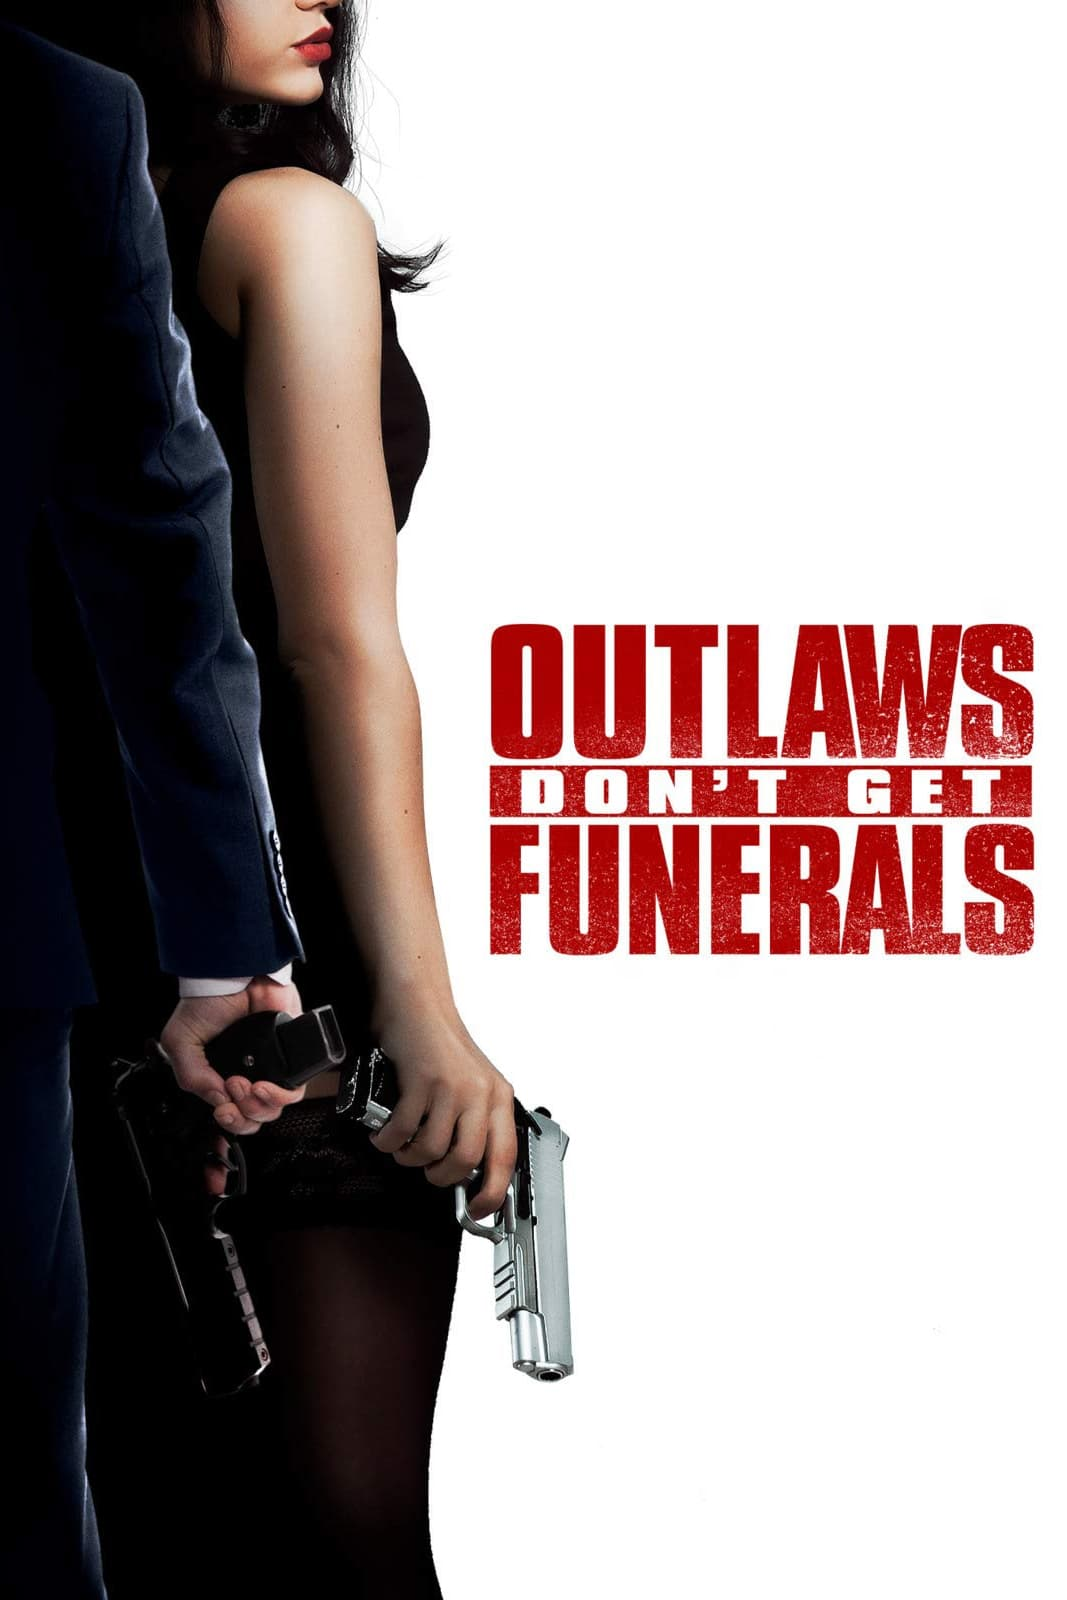 watch Outlaws Don't Get Funerals 2019 Stream online free